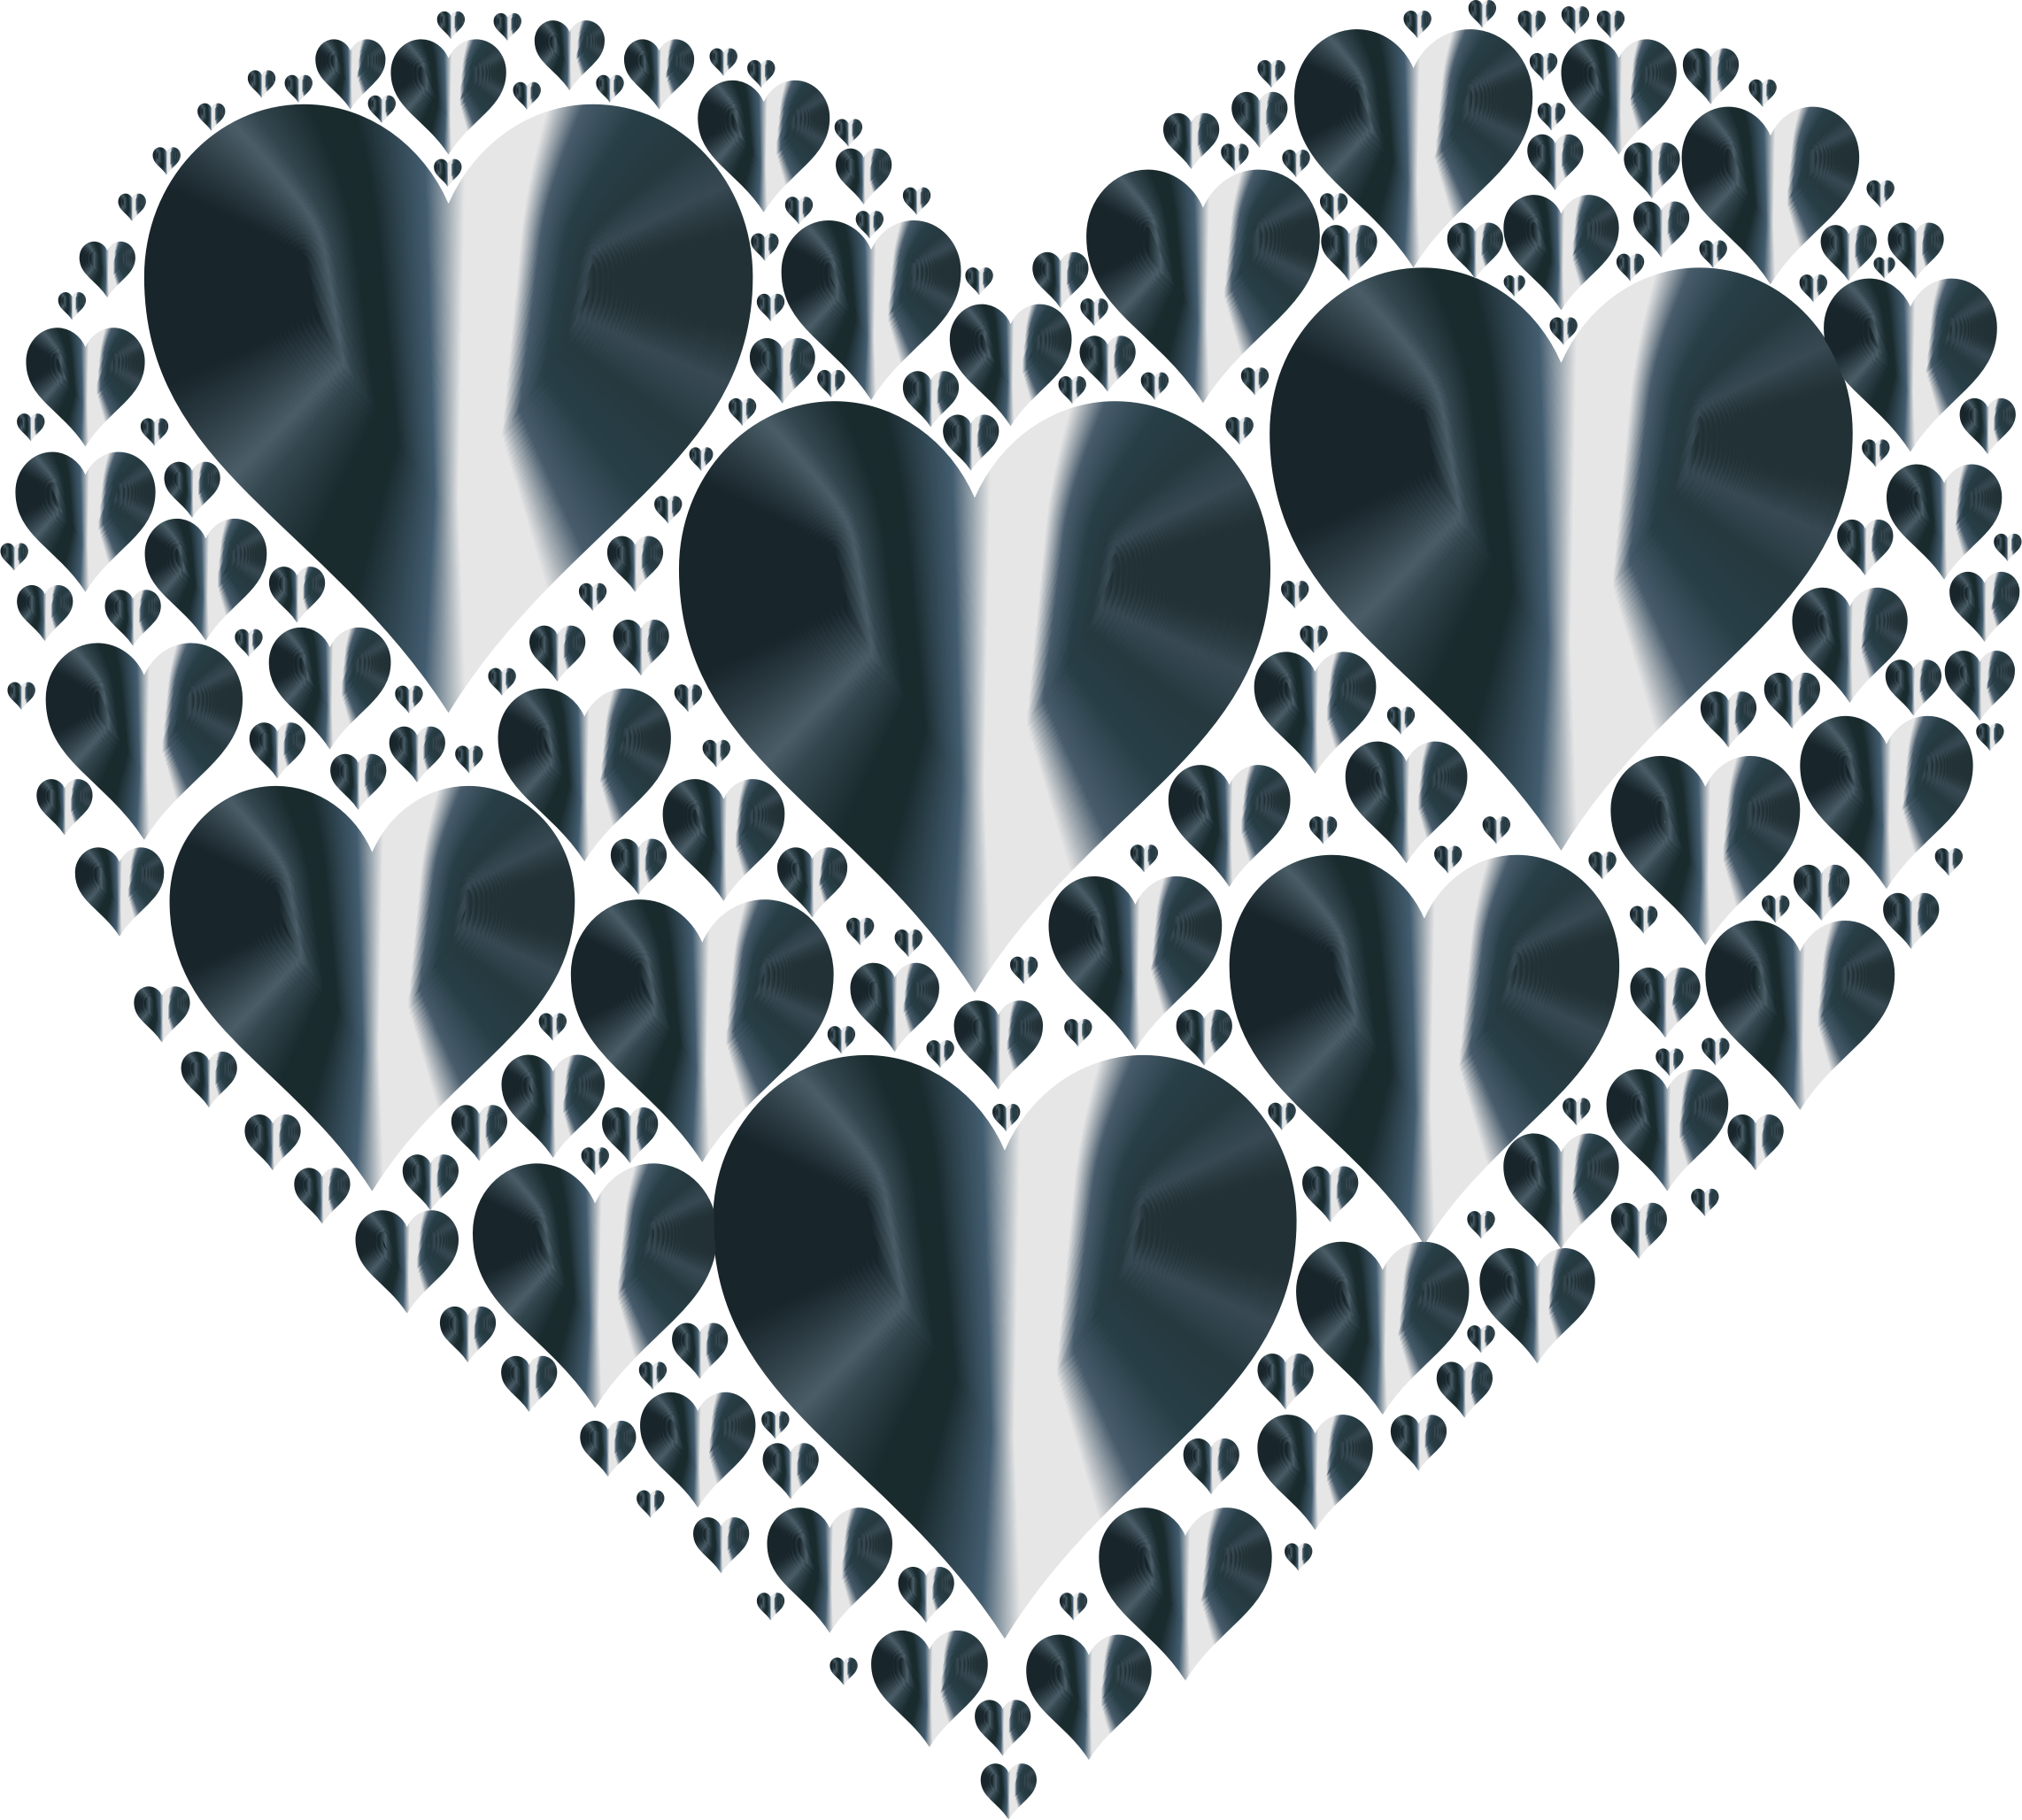 Hearts In Heart Rejuvenated 9 No Background by GDJ